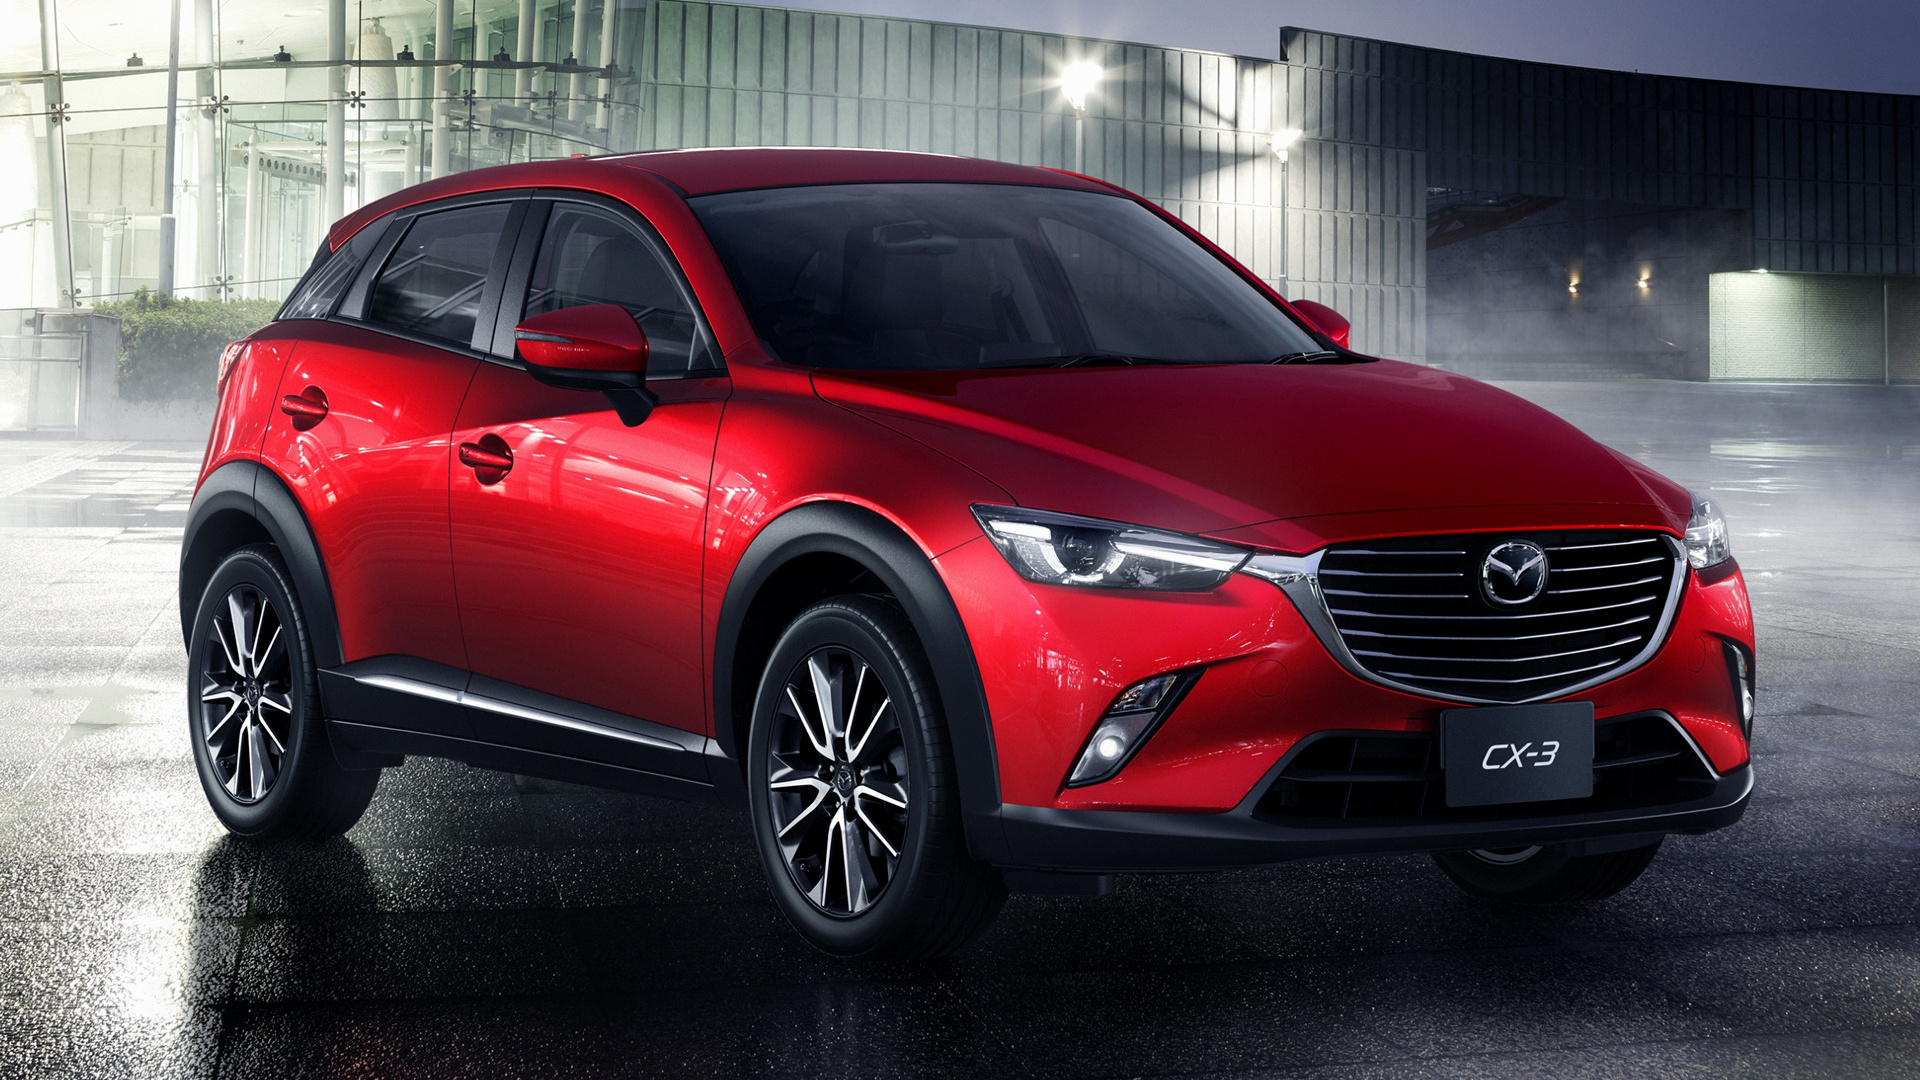 Dodge Ram 2015 >> 2015 Mazda CX-3 (JP) - Wallpapers and HD Images | Car Pixel